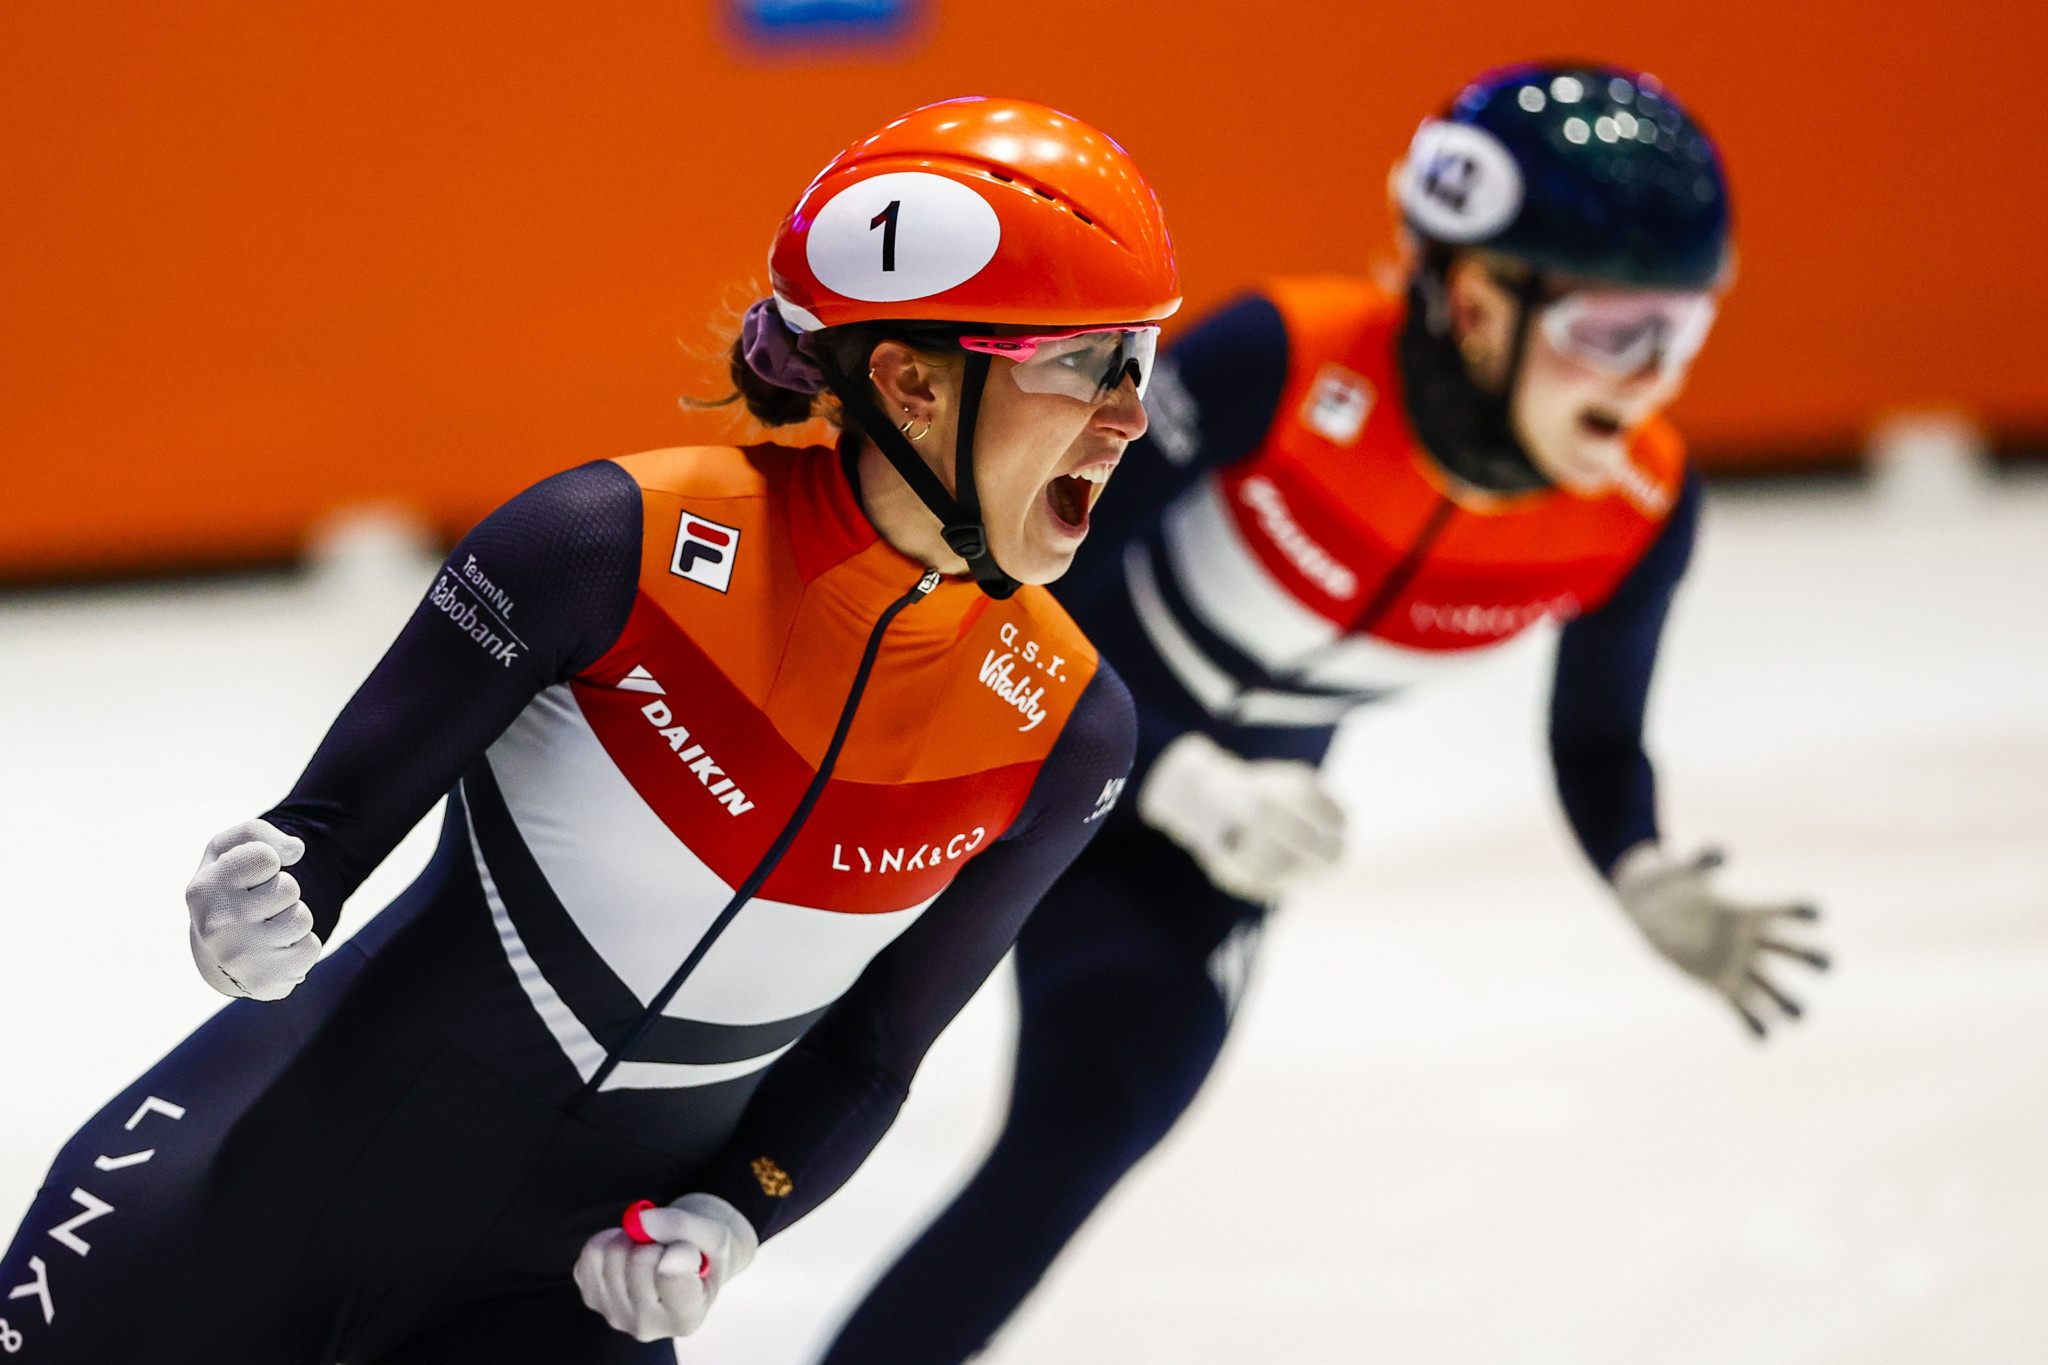 Schulting clinches double gold at World Short Track Speed Skating Championships in Dordrecht